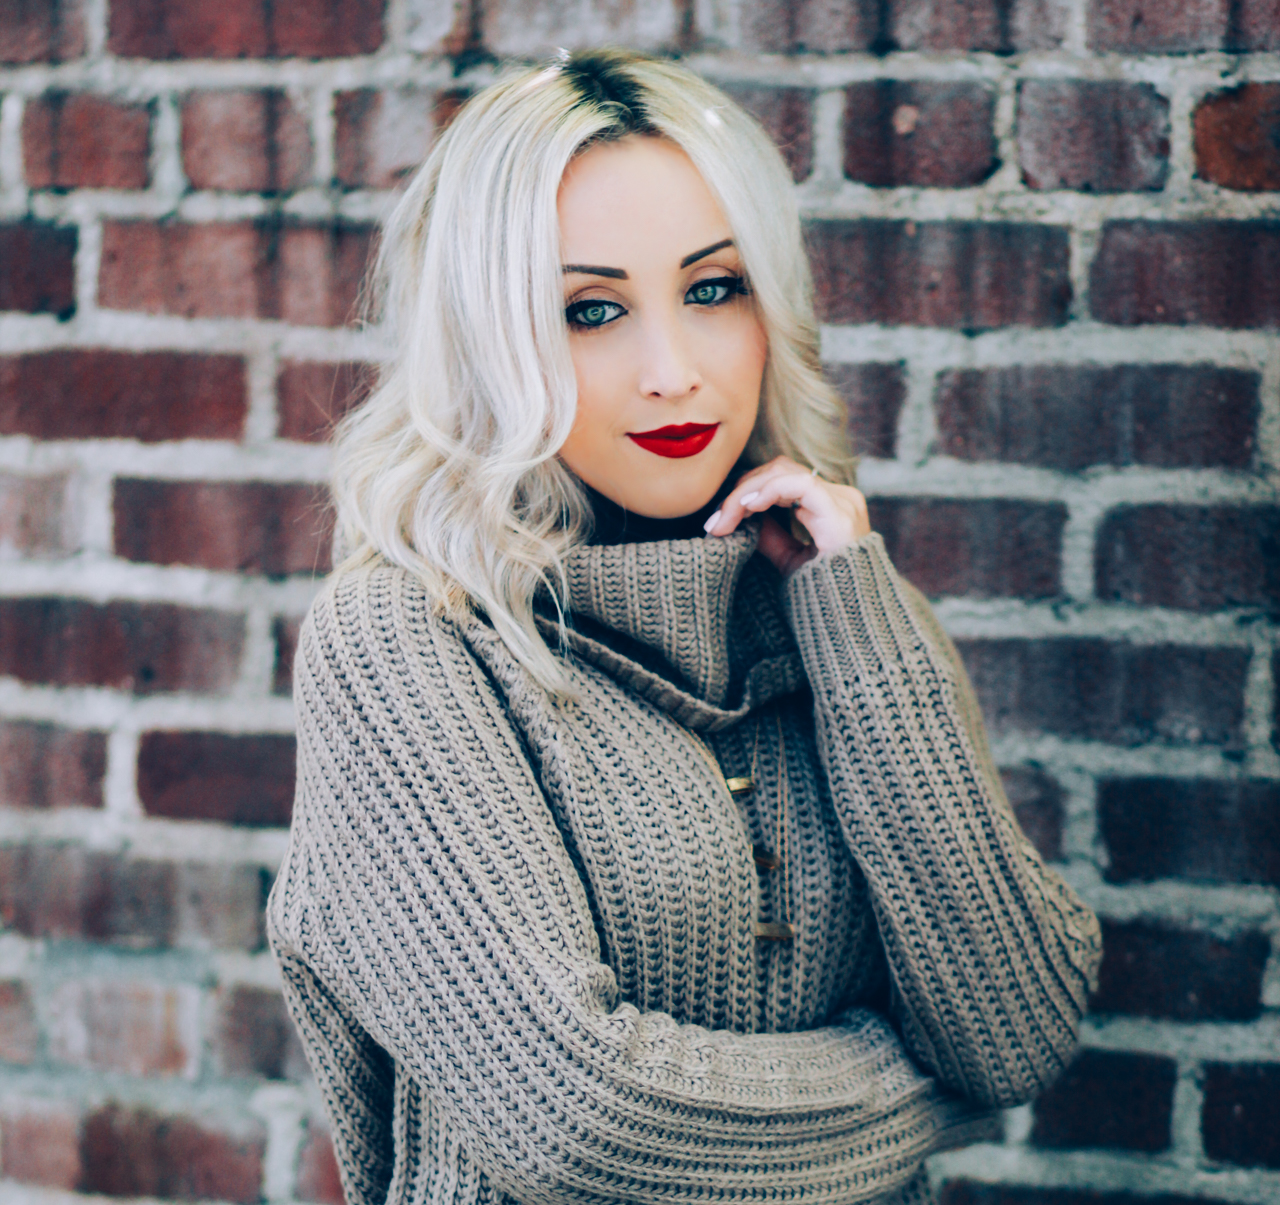 Turtleneck Knit Sweater for Fall | StyledByBlondie.com